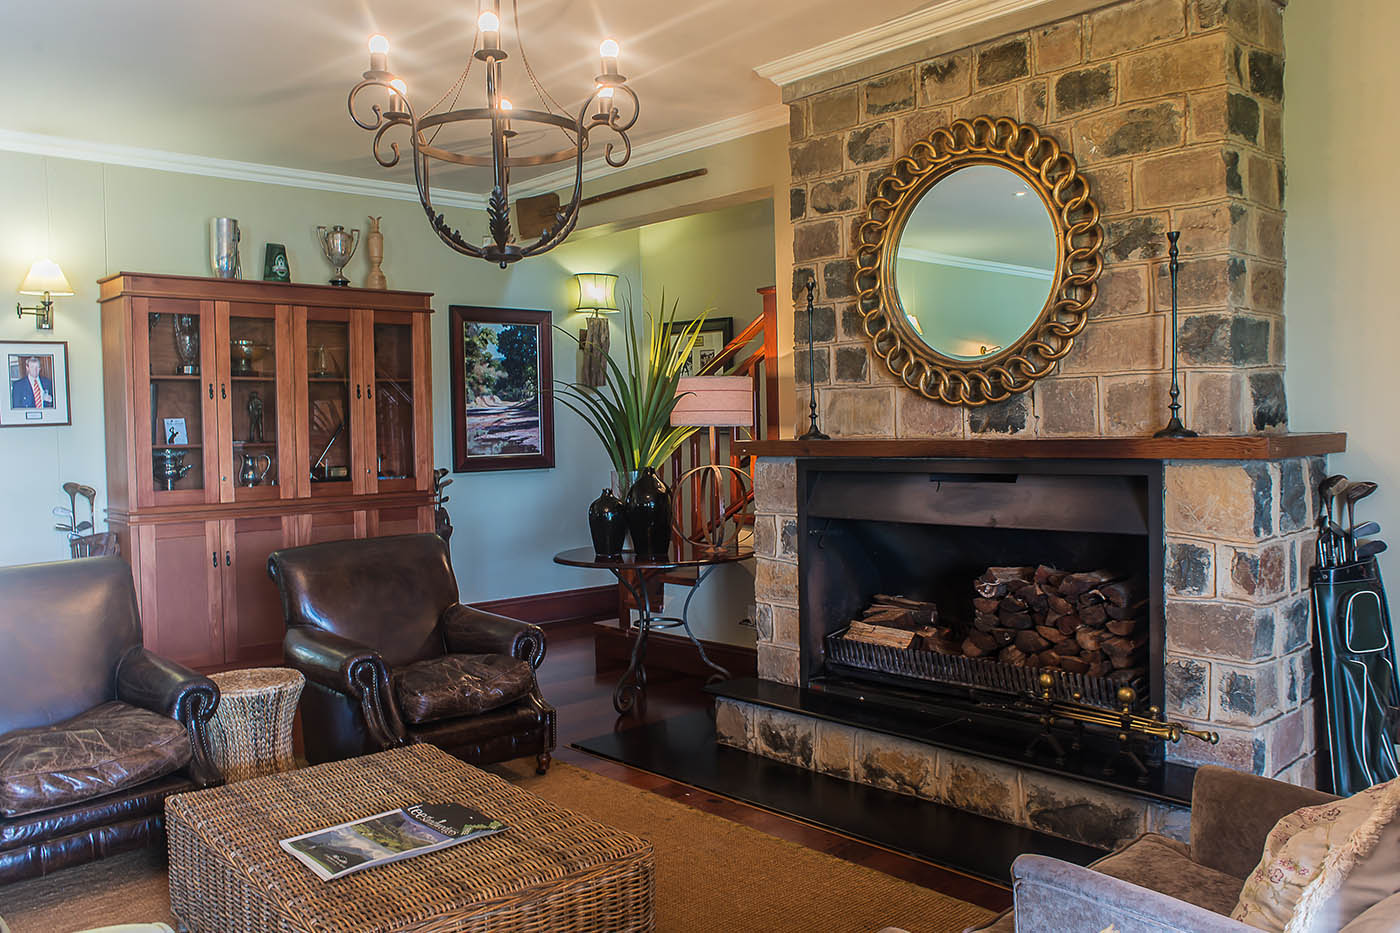 gowrie-club-house-gallery-golf-lodge-property-midlands-drakensberg-housing-development-kzn-luxury-cultural-attractions